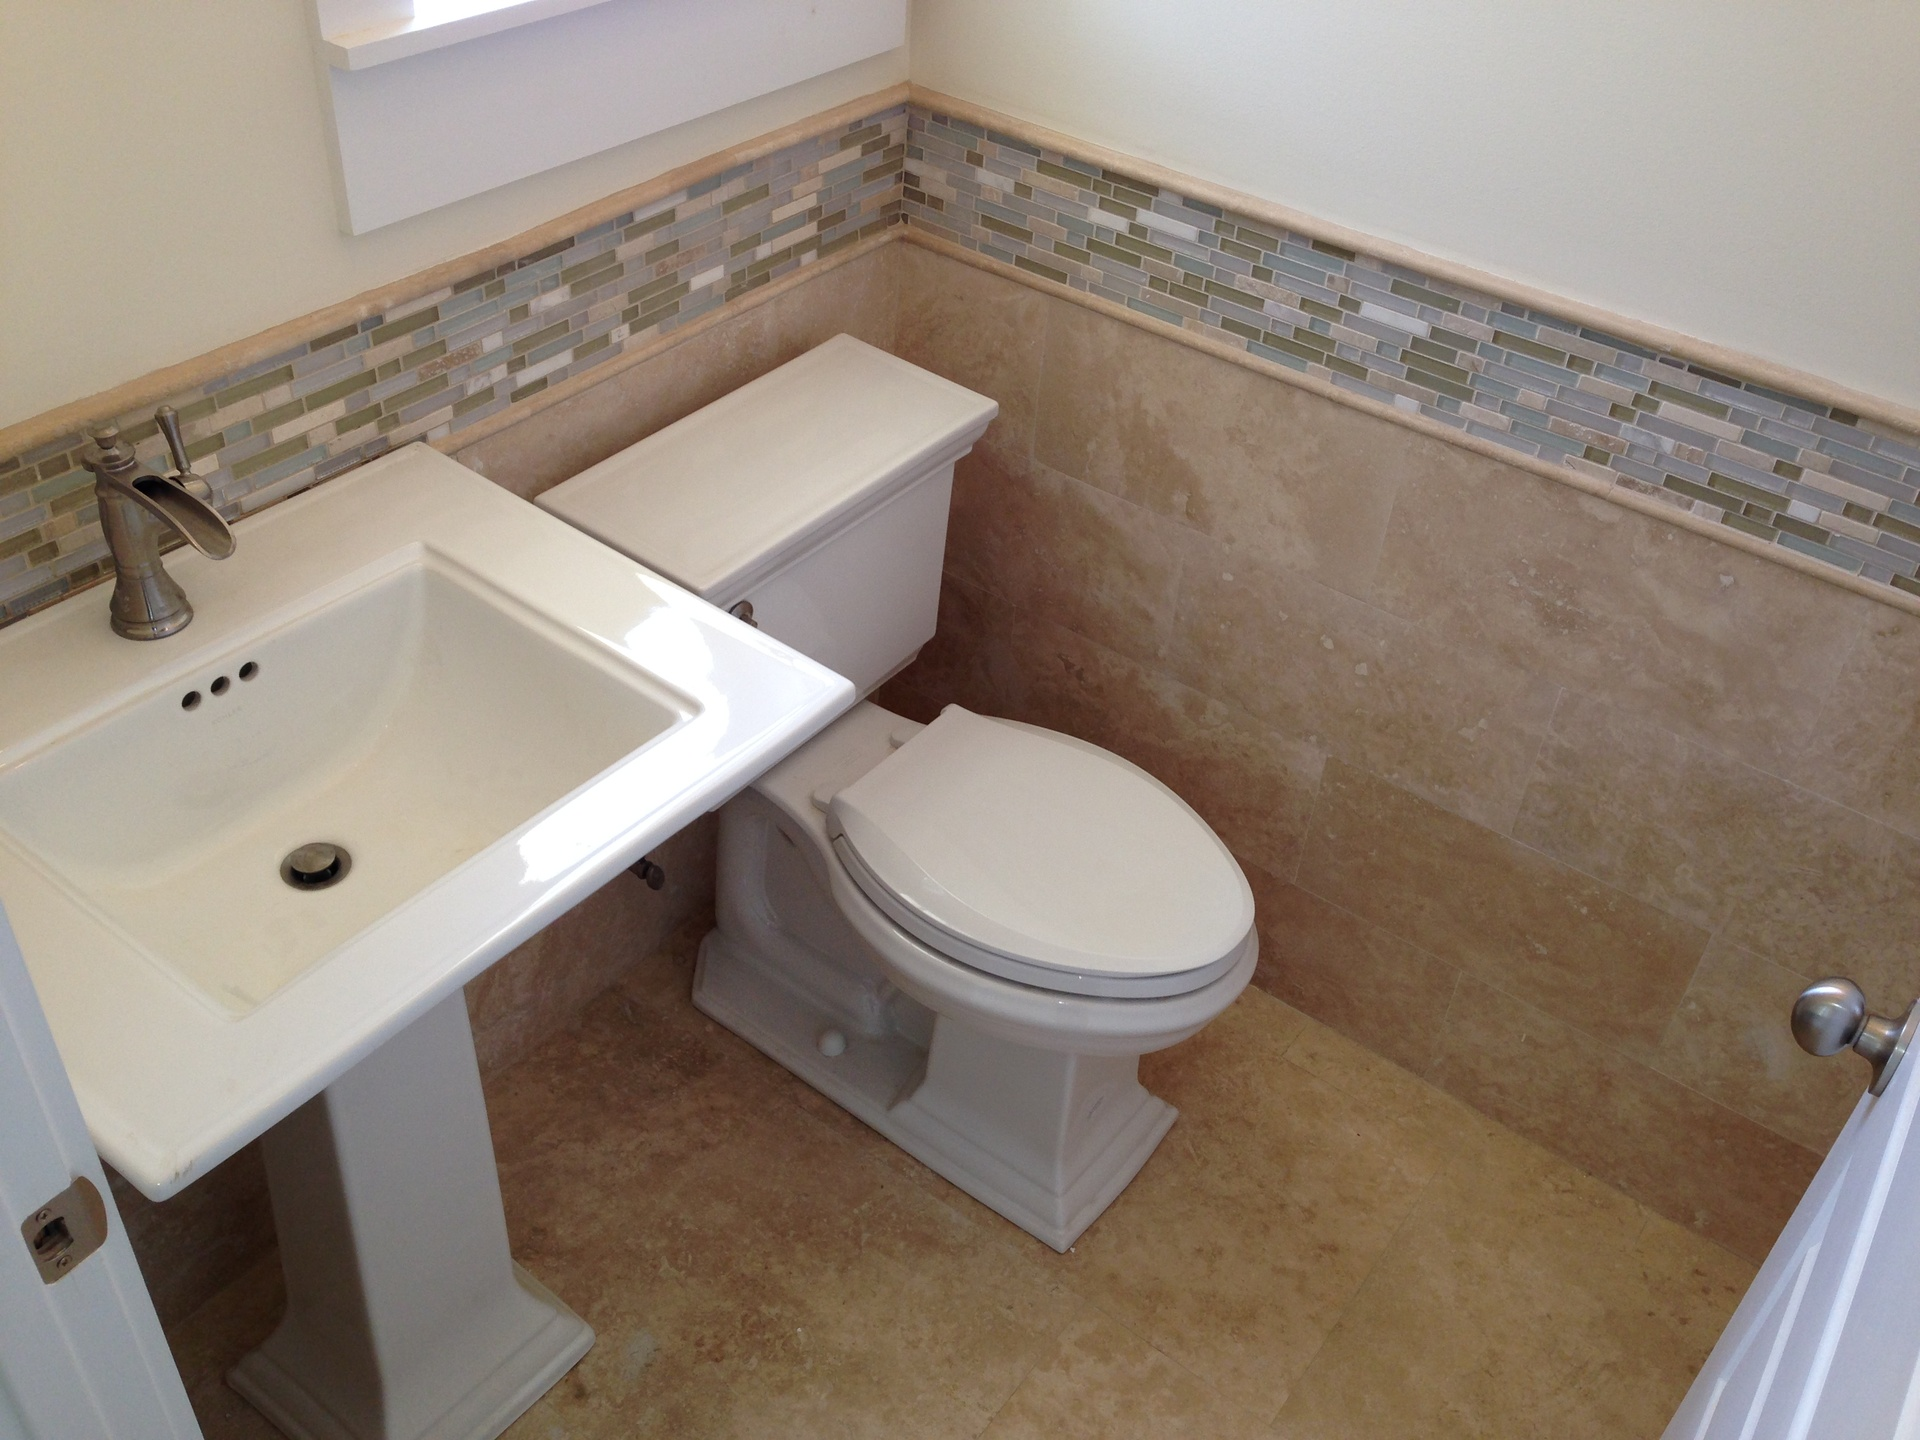 Bathroom Kitchen Remodeling Done OnTime And OnBudget Call For - Bathroom remodeling panama city beach